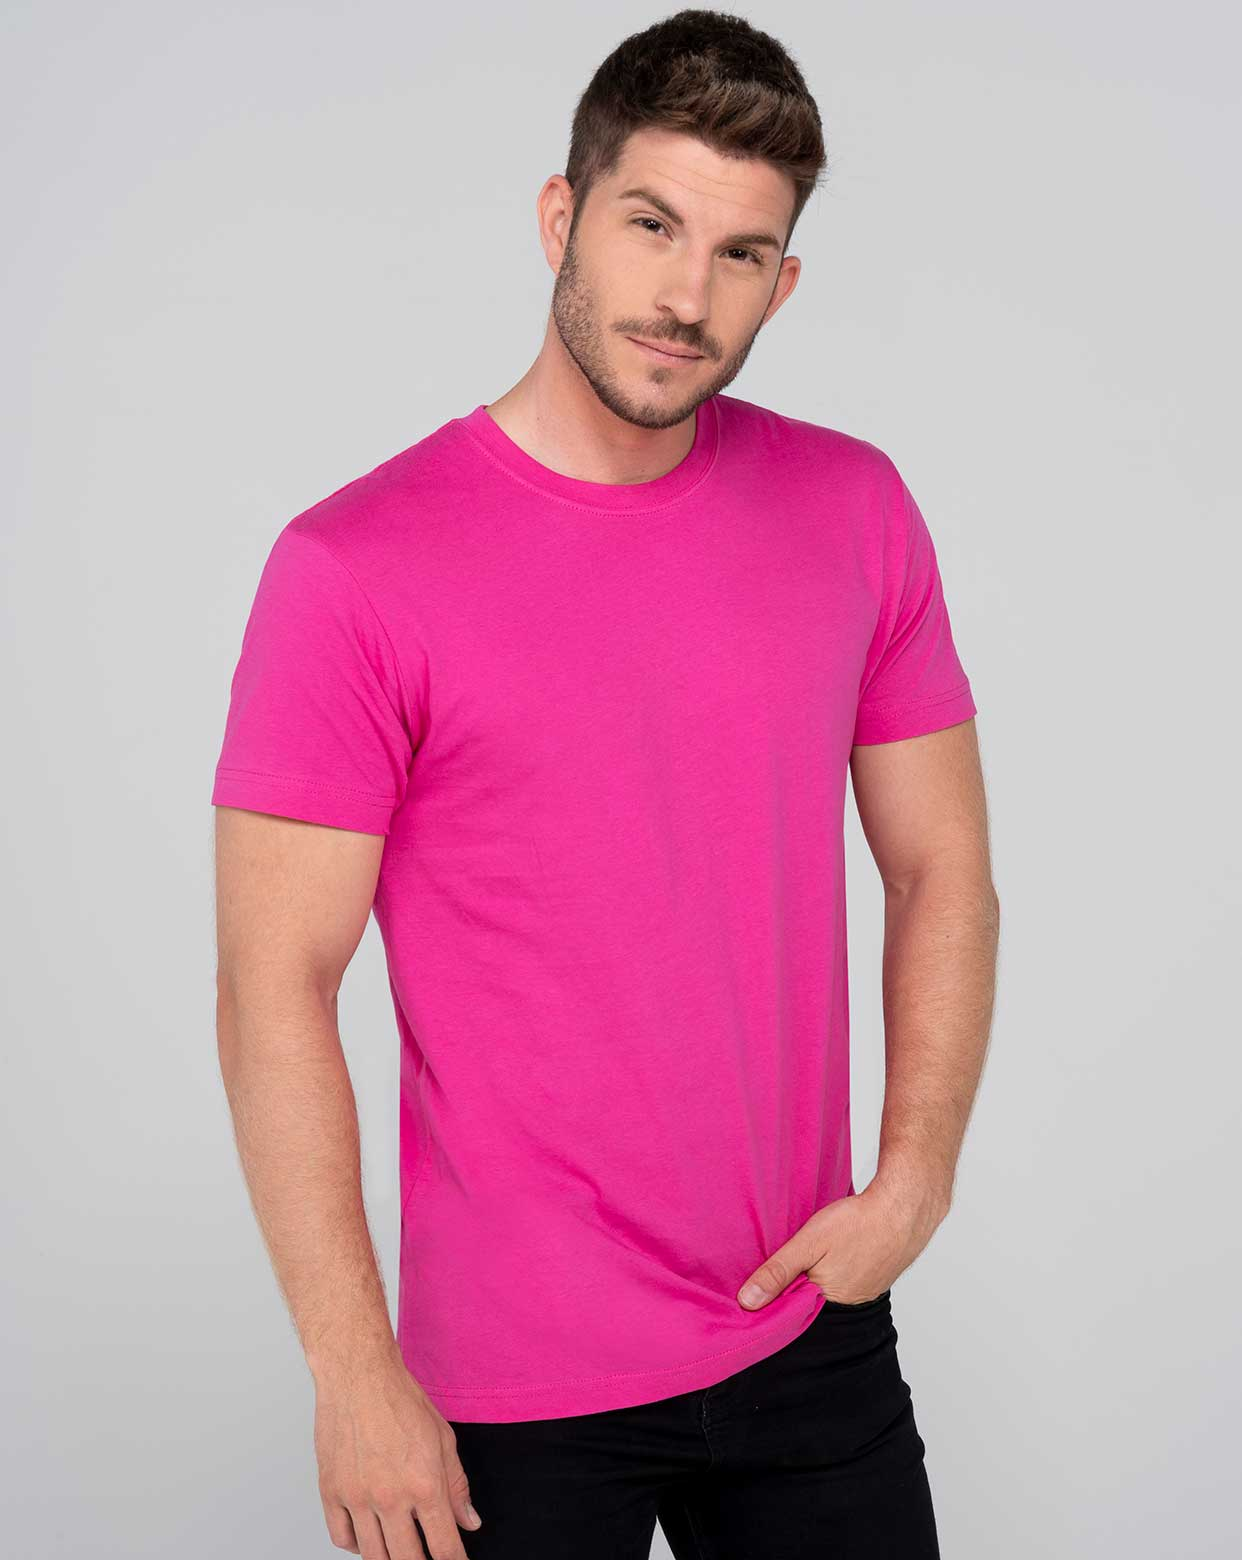 Urban T-Shirt - TSUA150